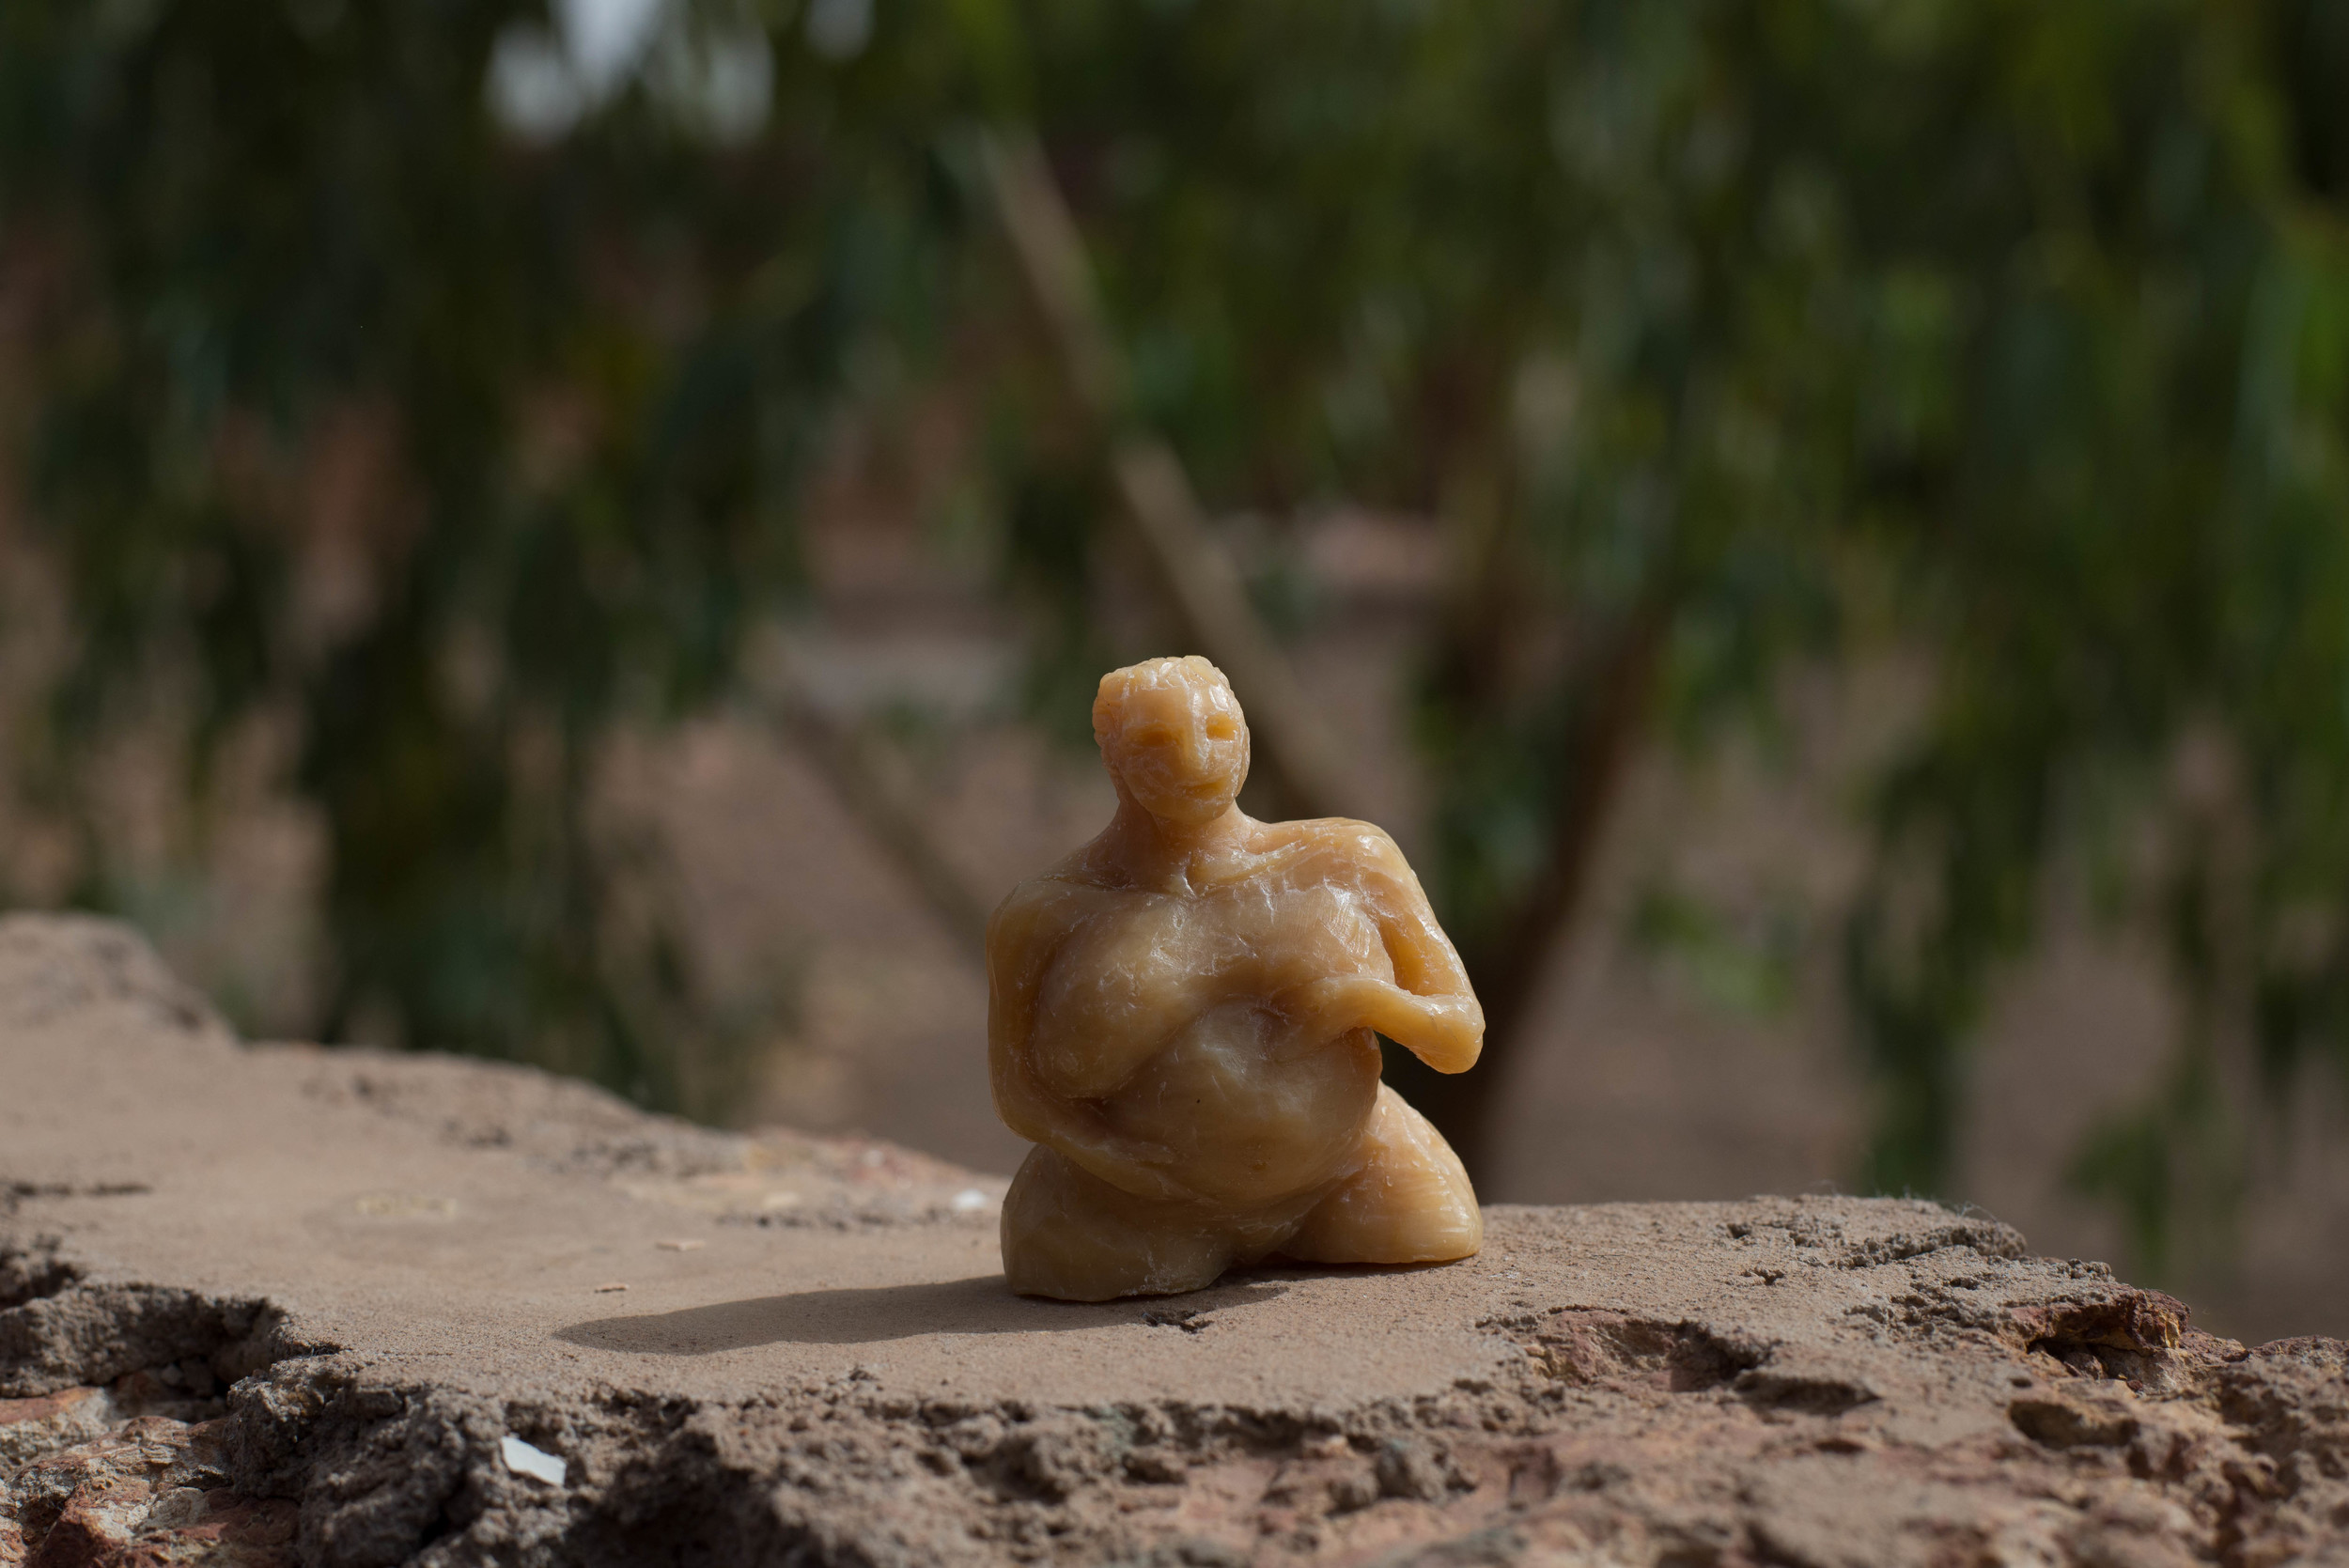 Soap figurine of a pregnant woman. There are at least four pregenant women in my neighbor's family compound, so after I carved this and gave it to their family.